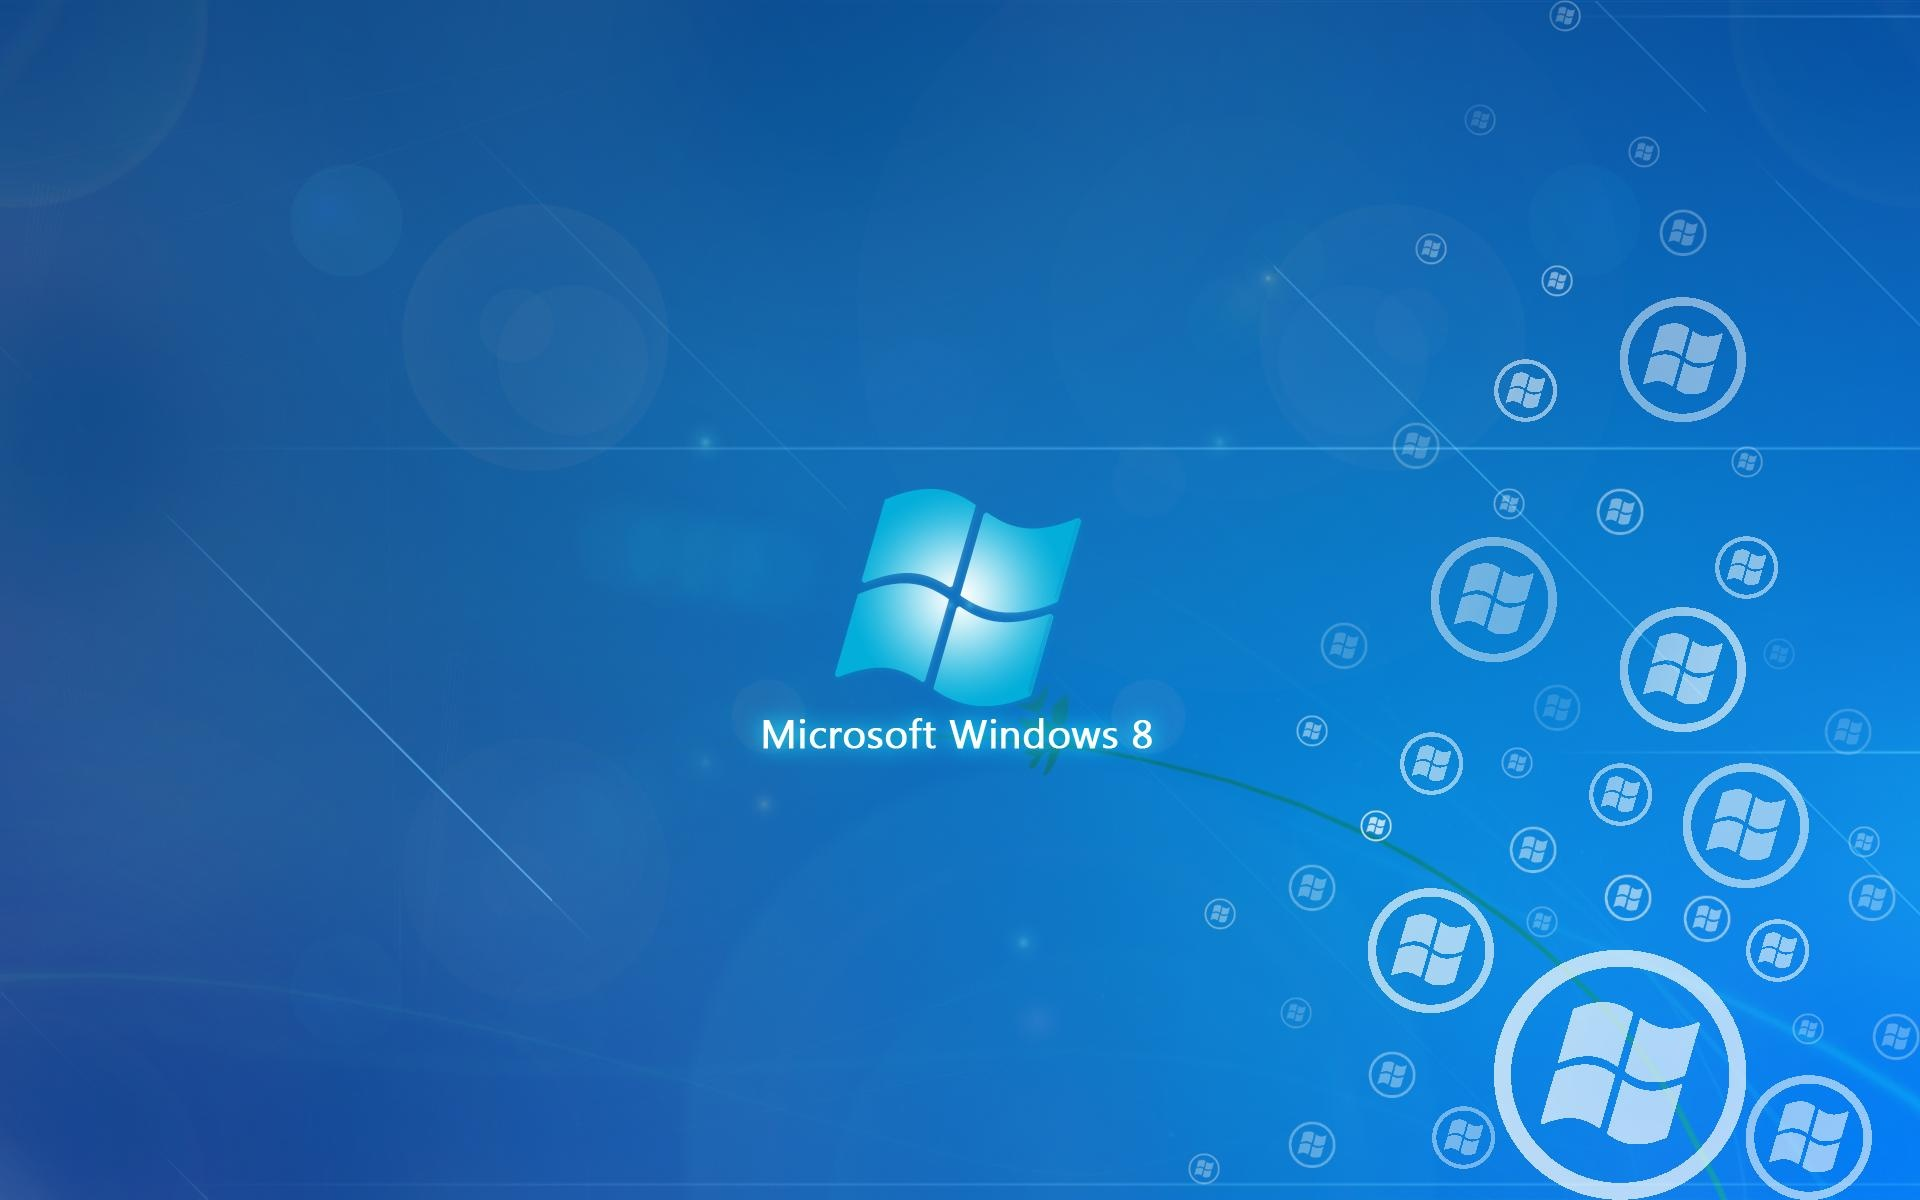 Windows 8 017 Logo, Blue